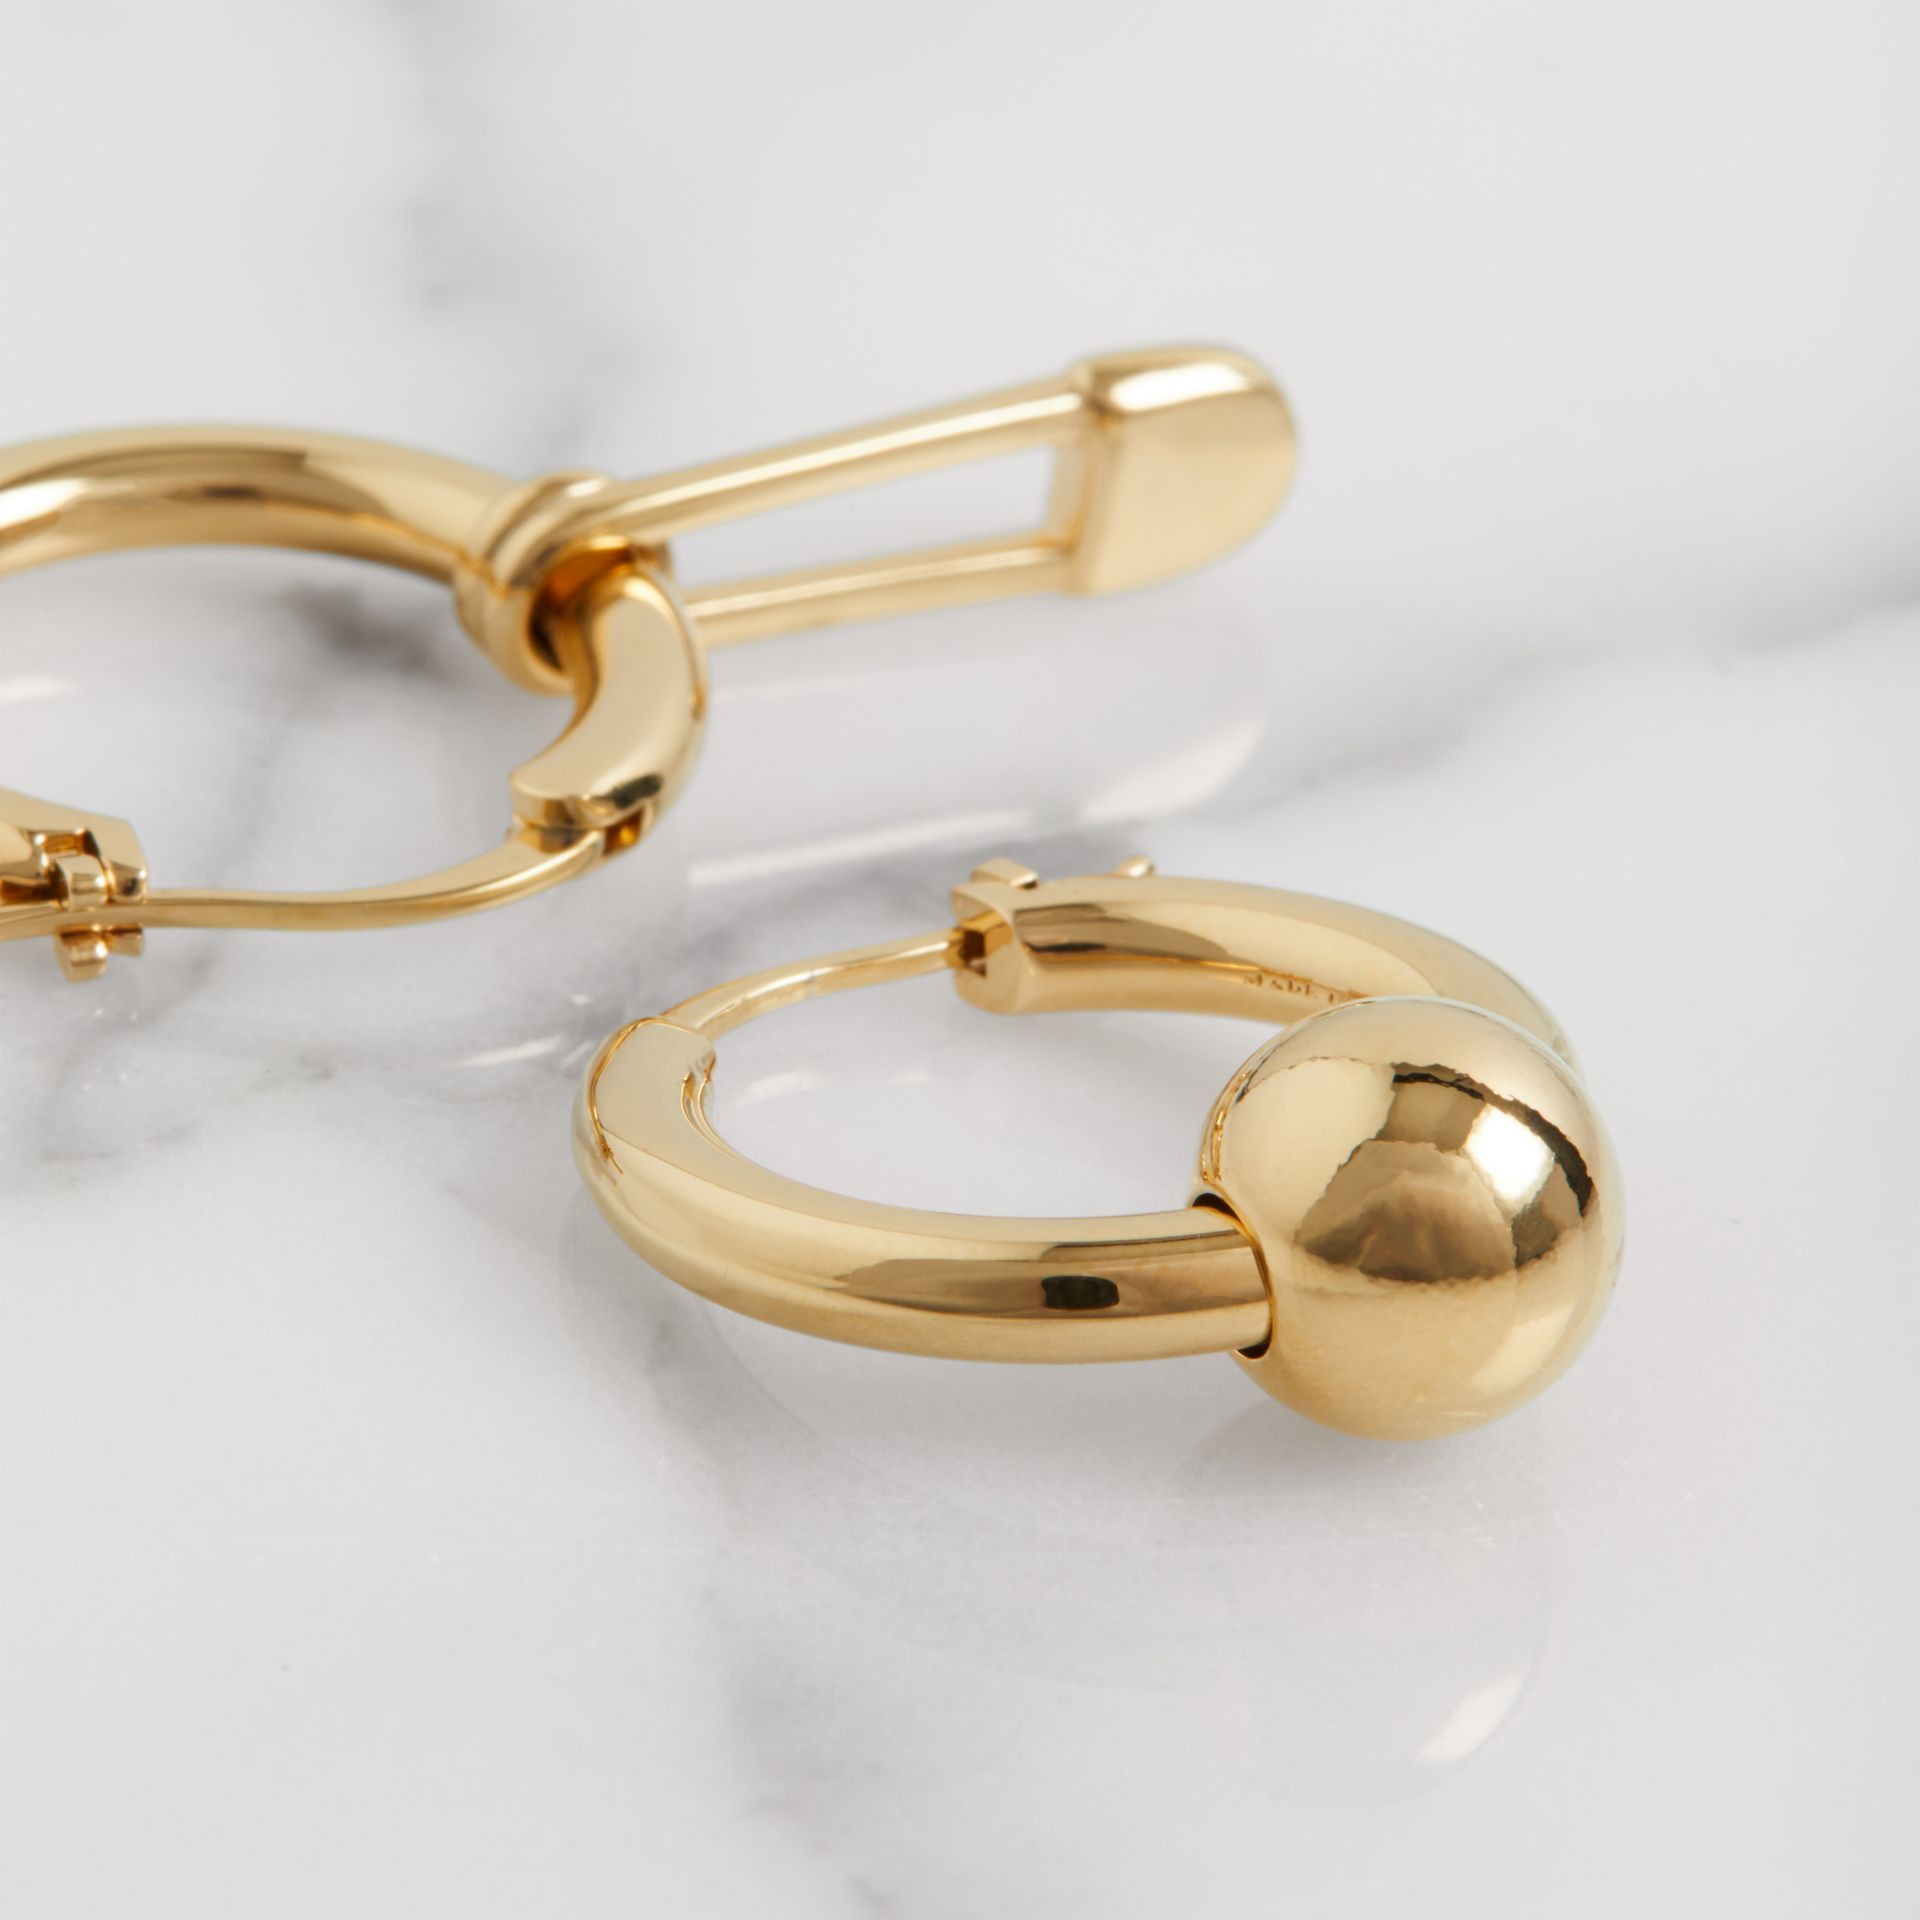 Kilt Pin and Charm Gold-plated Hoop Earrings in Light - Women | Burberry - gallery image 1